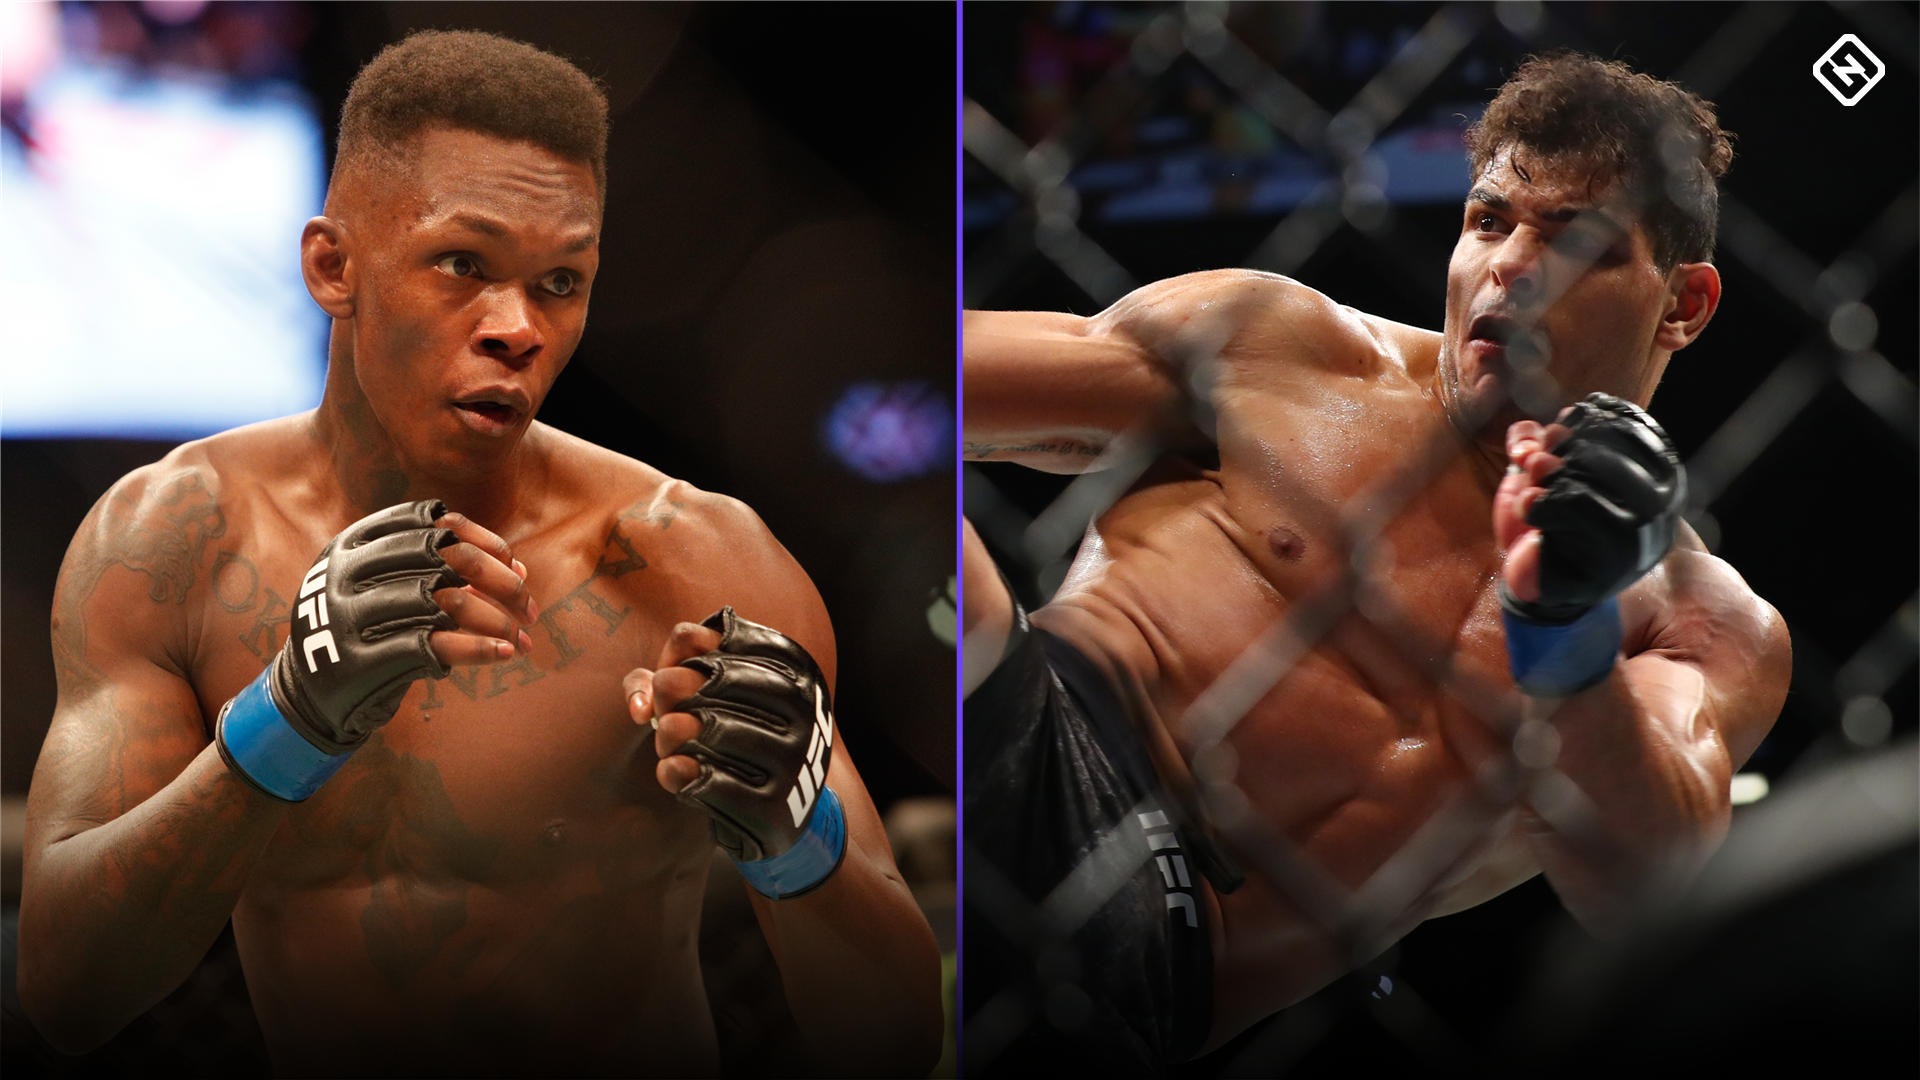 UFC 253 odds, prediction, betting trends for Israel Adesanya vs. Paulo Costa